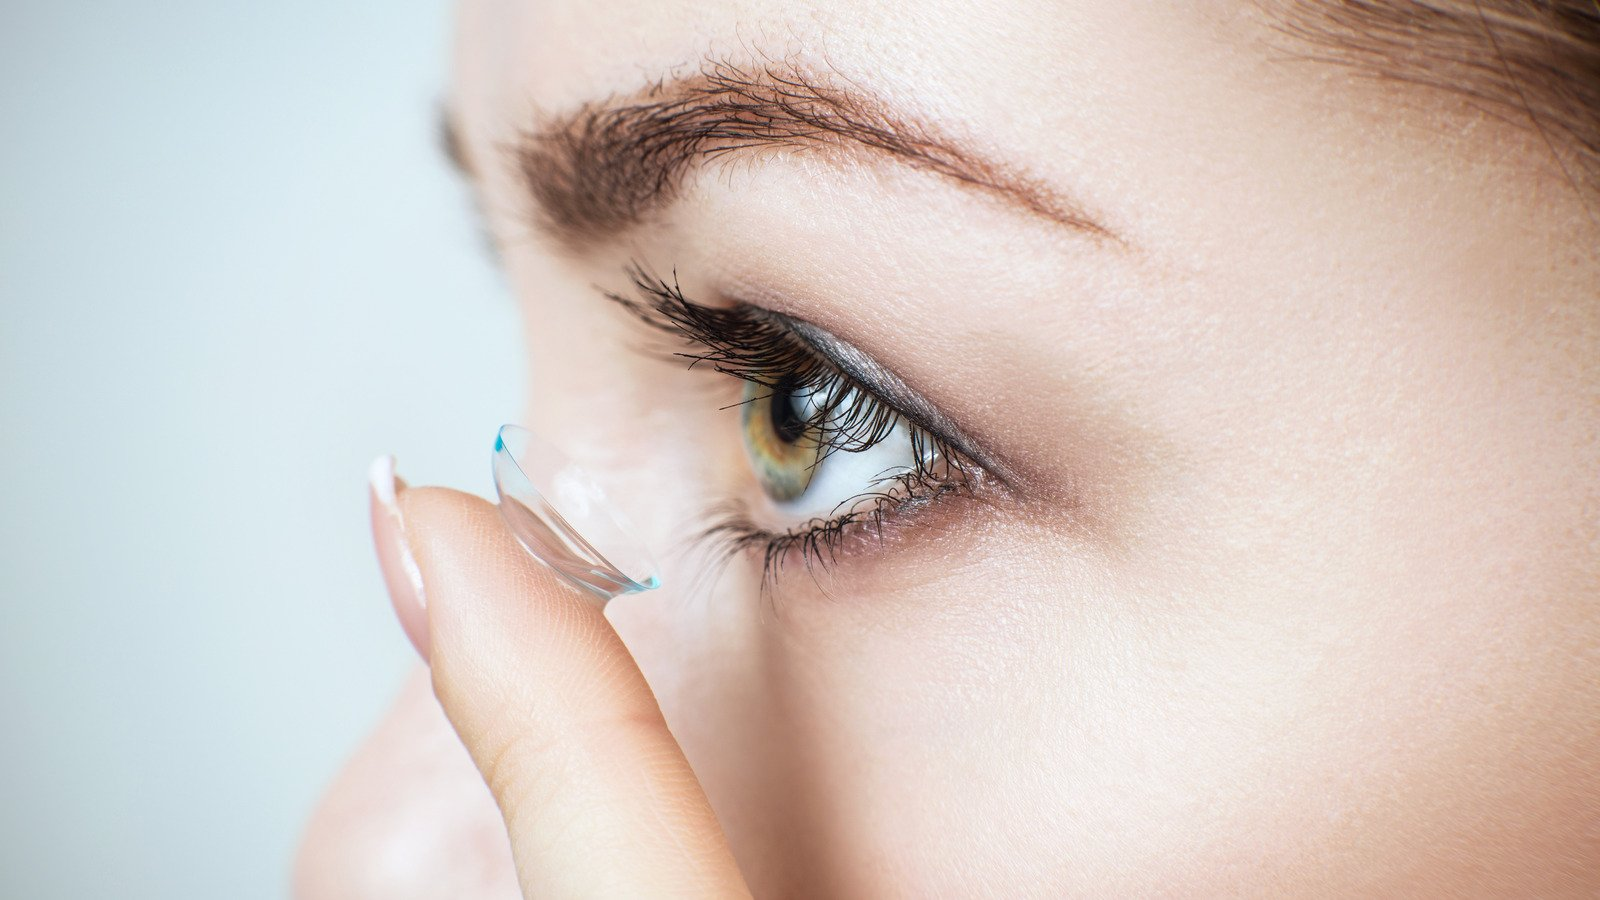 Is Sleeping With Contacts In Really Safe?